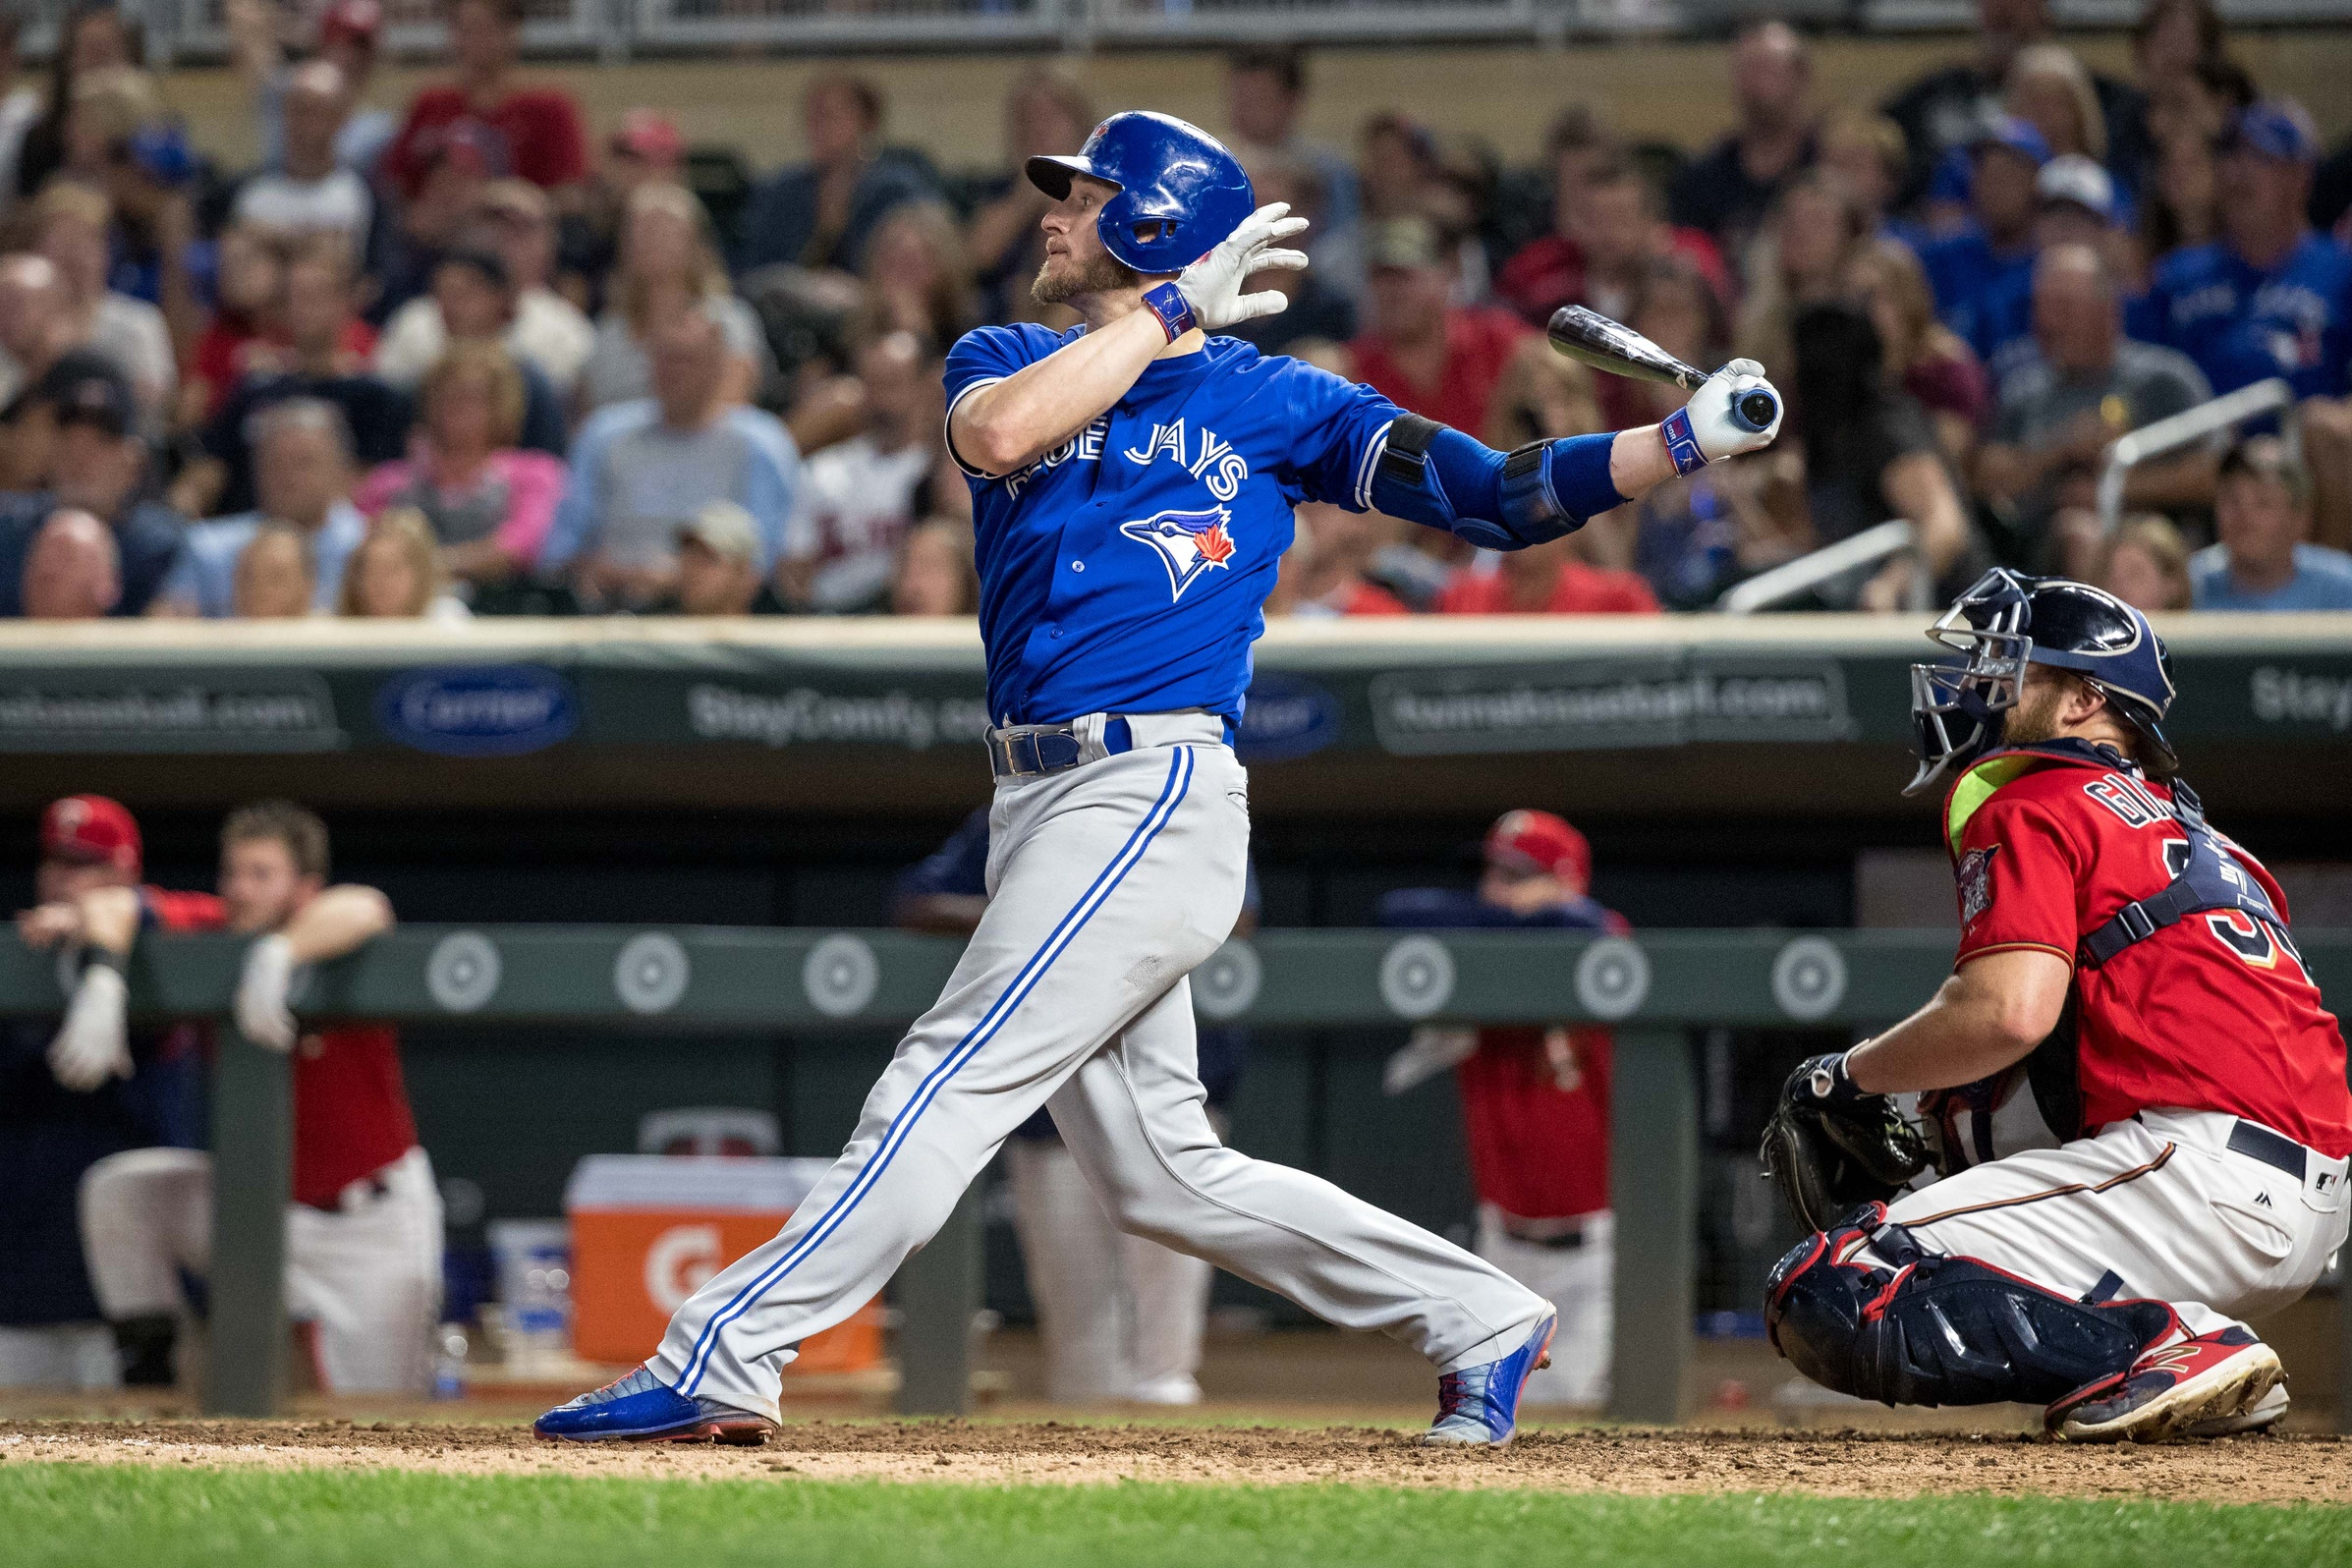 Sep 15, 2017; Minneapolis, MN, USA; Toronto Blue Jays third baseman Josh Donaldson (20) hits a double during the ninth inning against the Minnesota Twins at Target Field. Mandatory Credit: Jordan Johnson-USA TODAY Sports